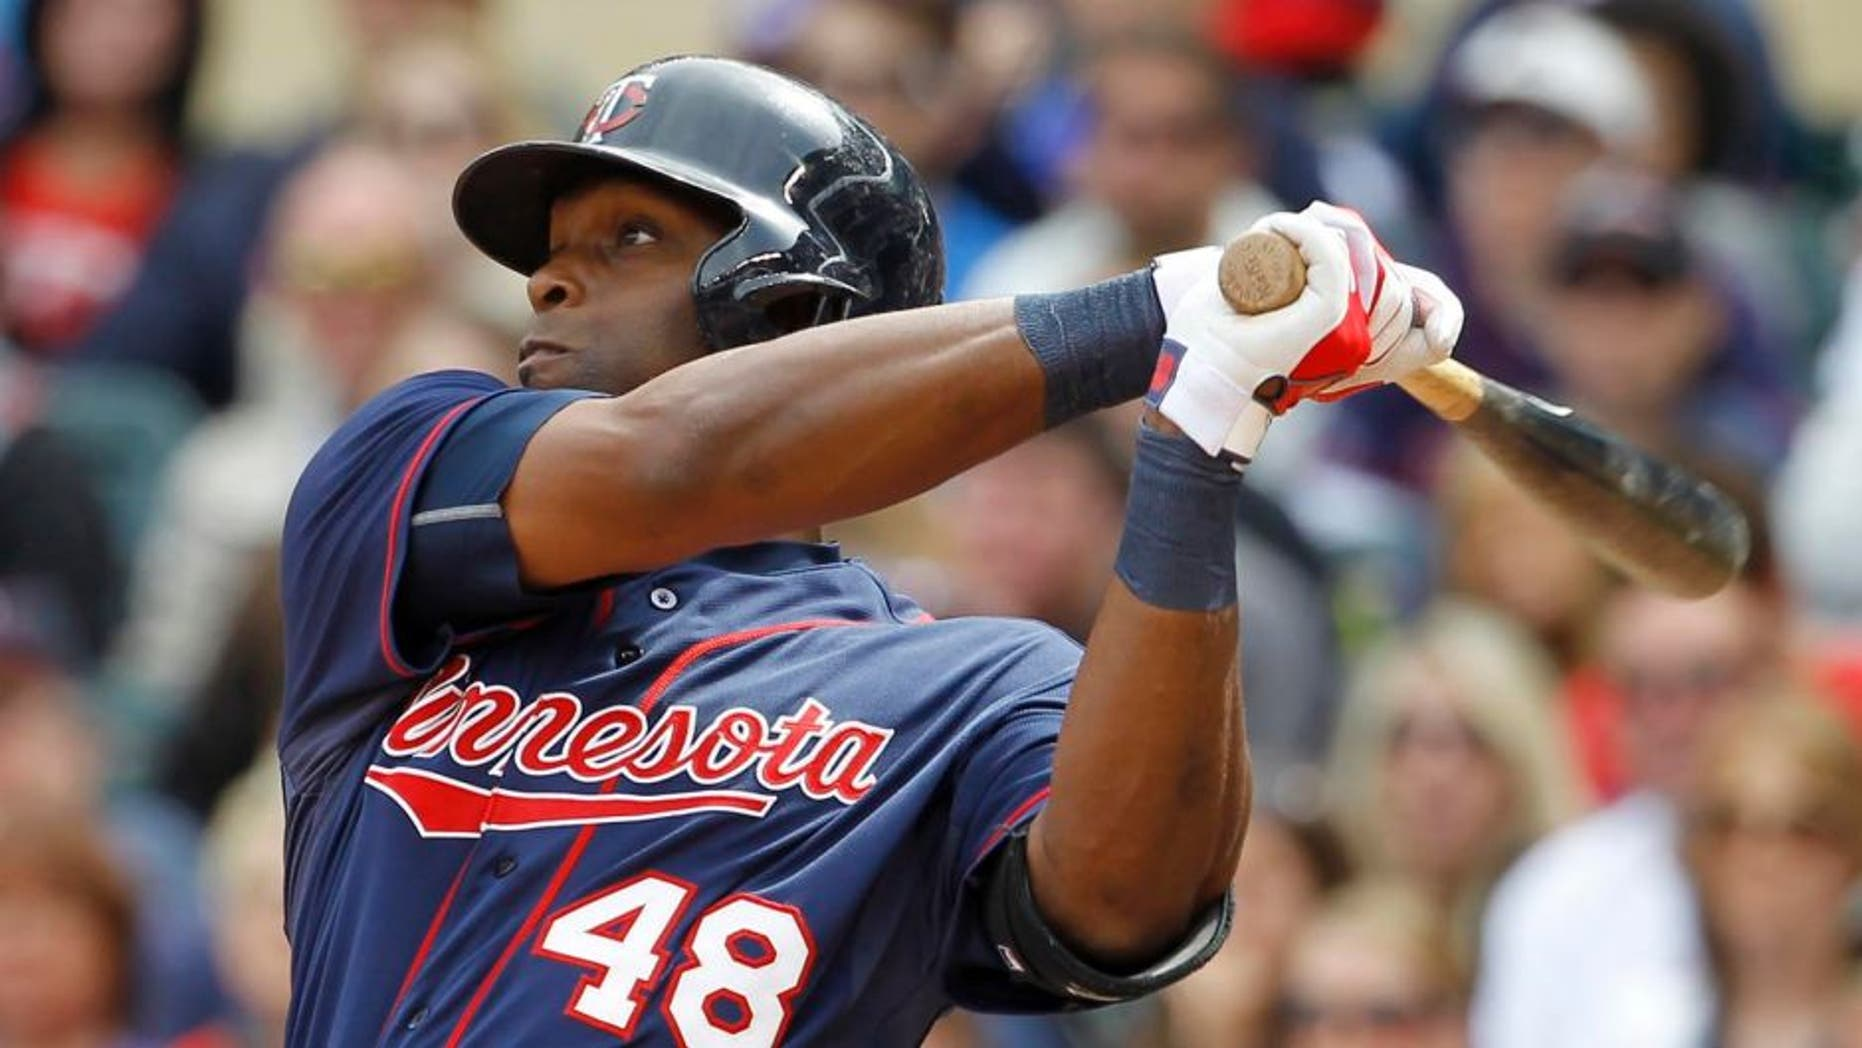 Sunday, May 31: The Minnesota Twins' Torii Hunter follows through on a two-run double off Toronto Blue Jays relief pitcher Roberto Osuna during the seventh inning in Minneapolis.